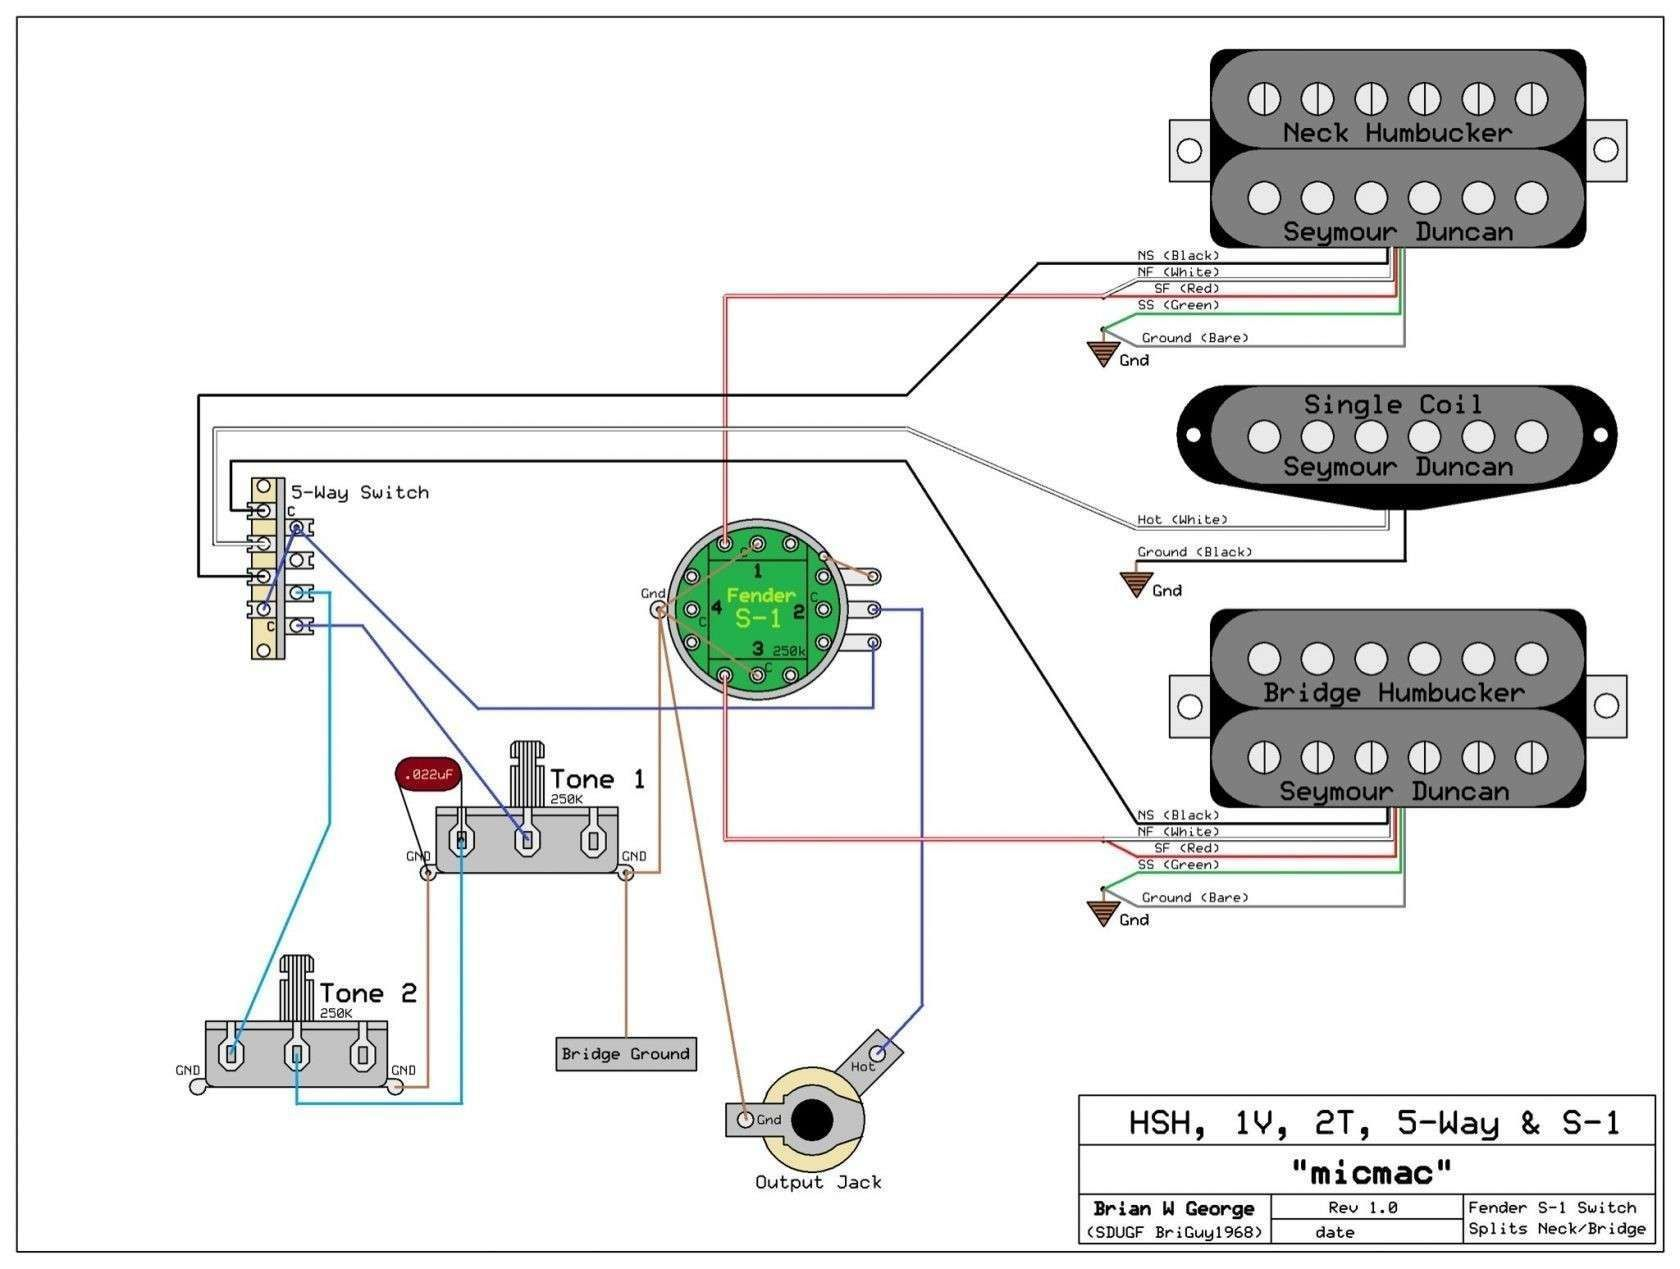 Wiring Diagram Guitar New 5 Way Import Switch Wiring Diagram ... on